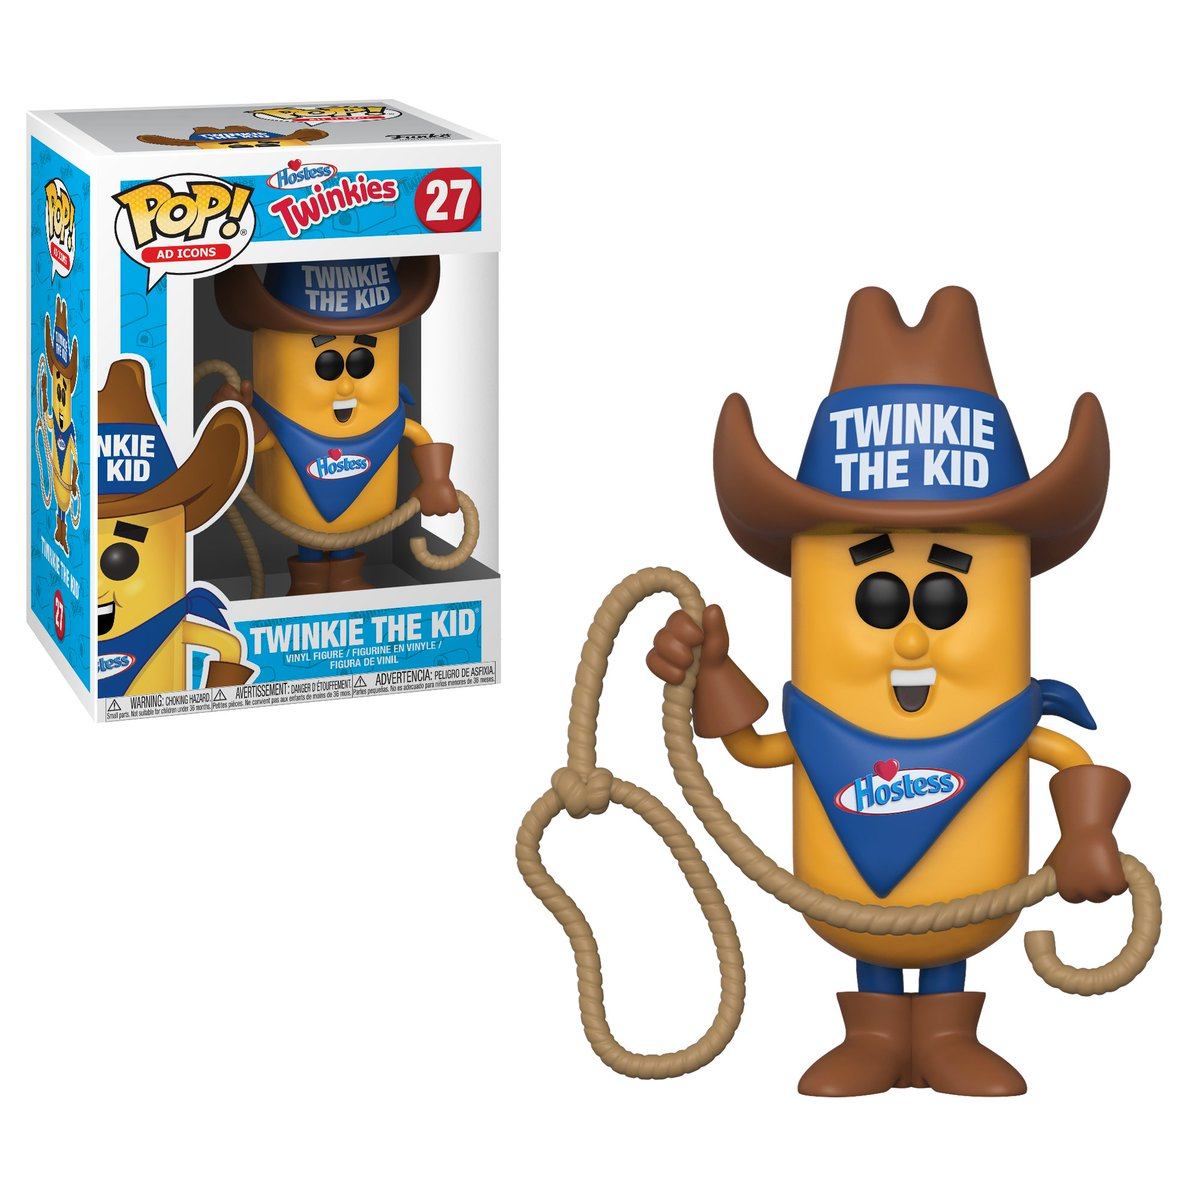 RT &amp; follow @OriginalFunko for the chance to win a Twinkie the Kid Pop!<br>http://pic.twitter.com/8ENLHeFbM4